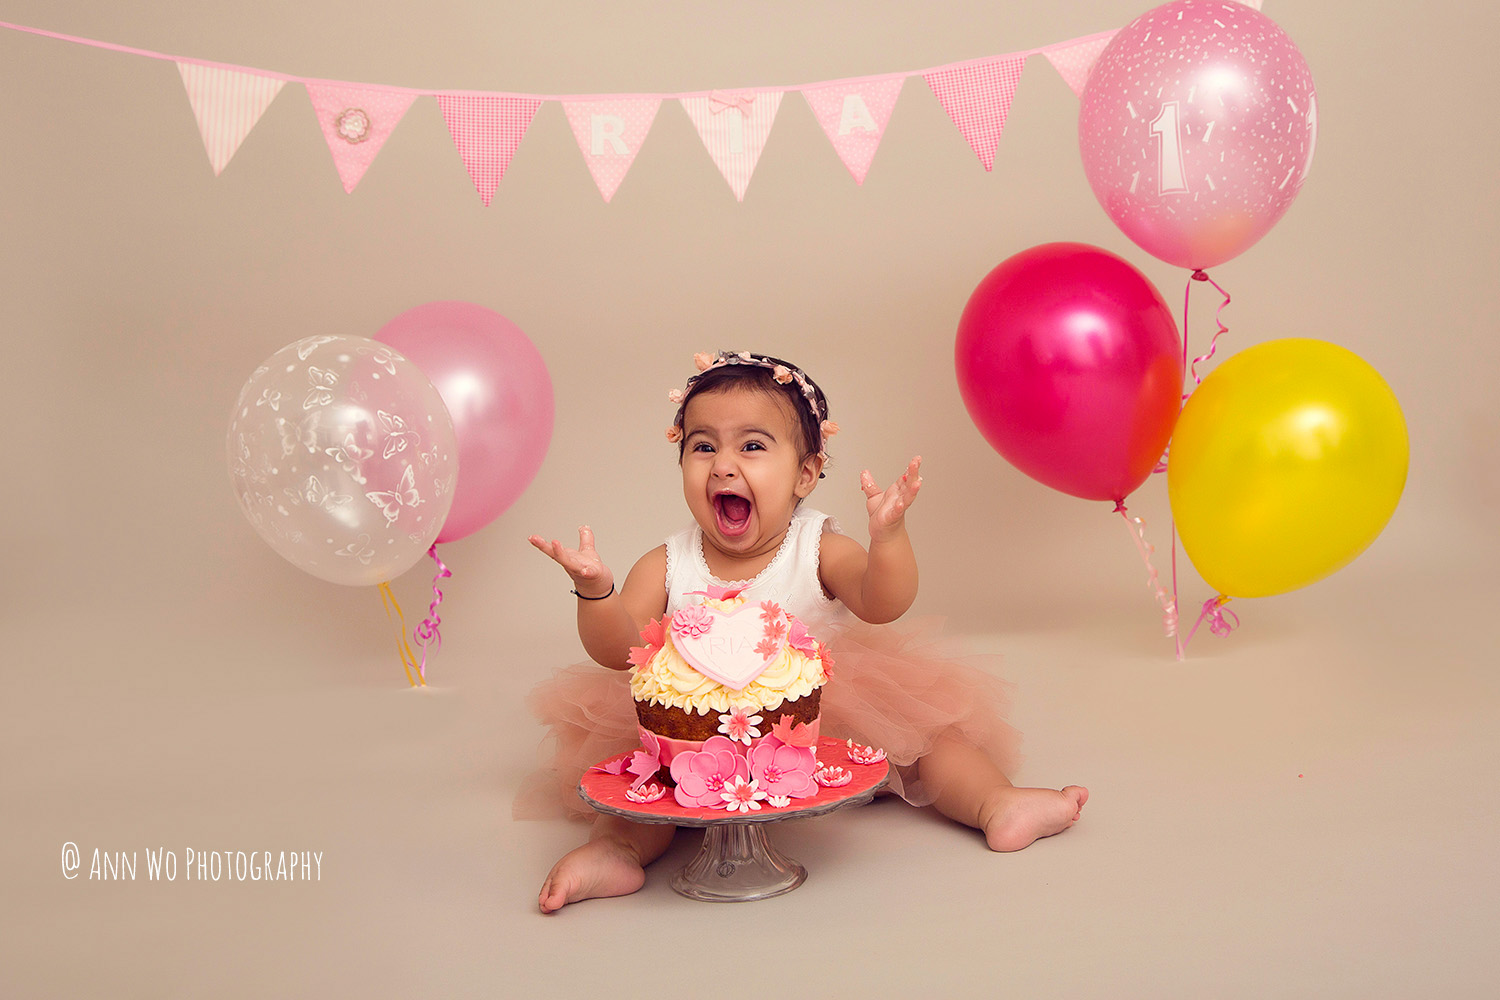 cake-smash-ria-london-baby-photographer15.jpg